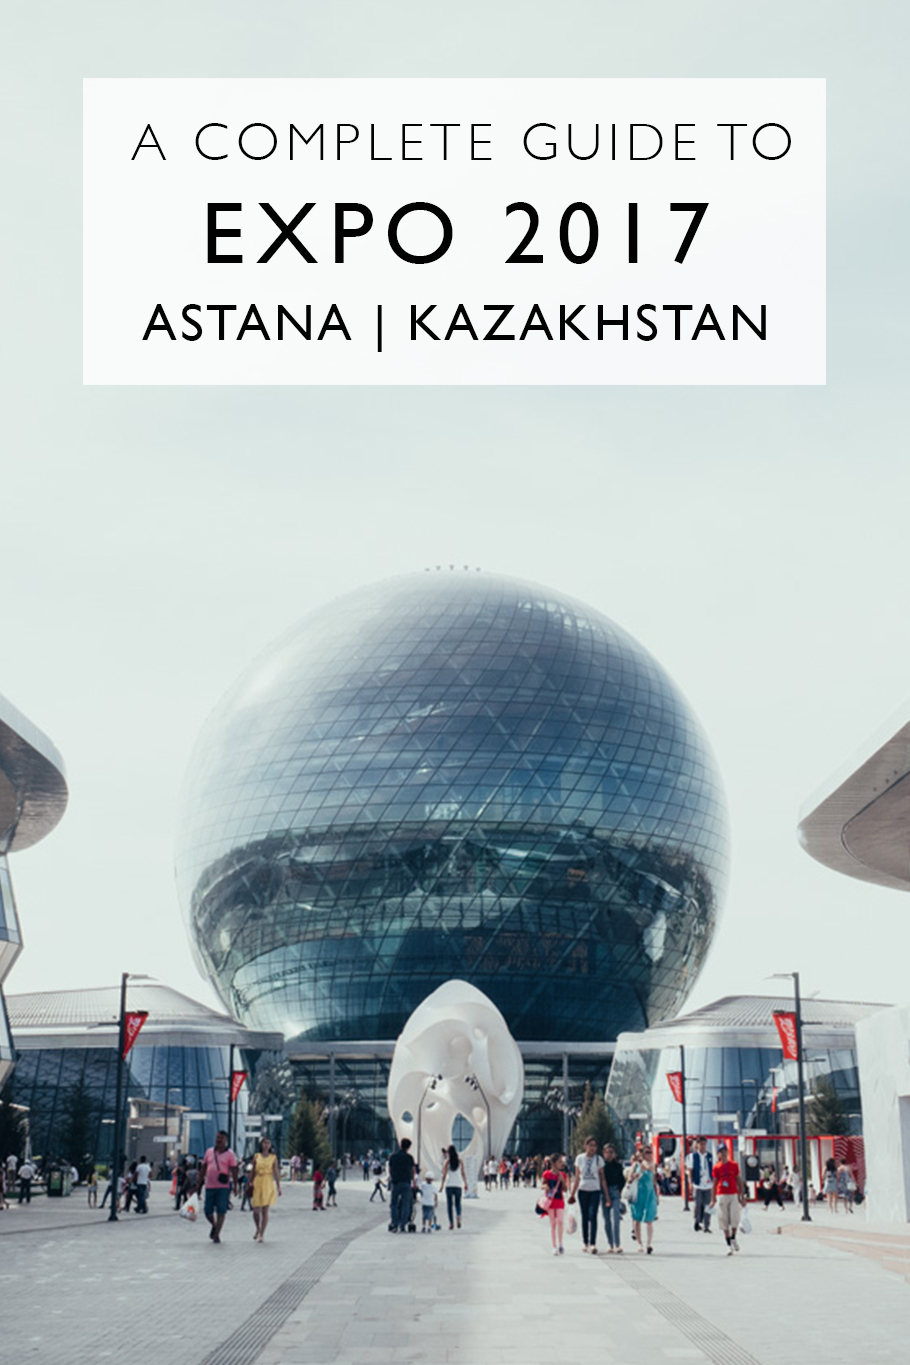 A Complete Guide To Expo 2017 In Astana, Kazakhstan For Travelers | What To See At Astana's World Fair | Main Events at Expo 2017